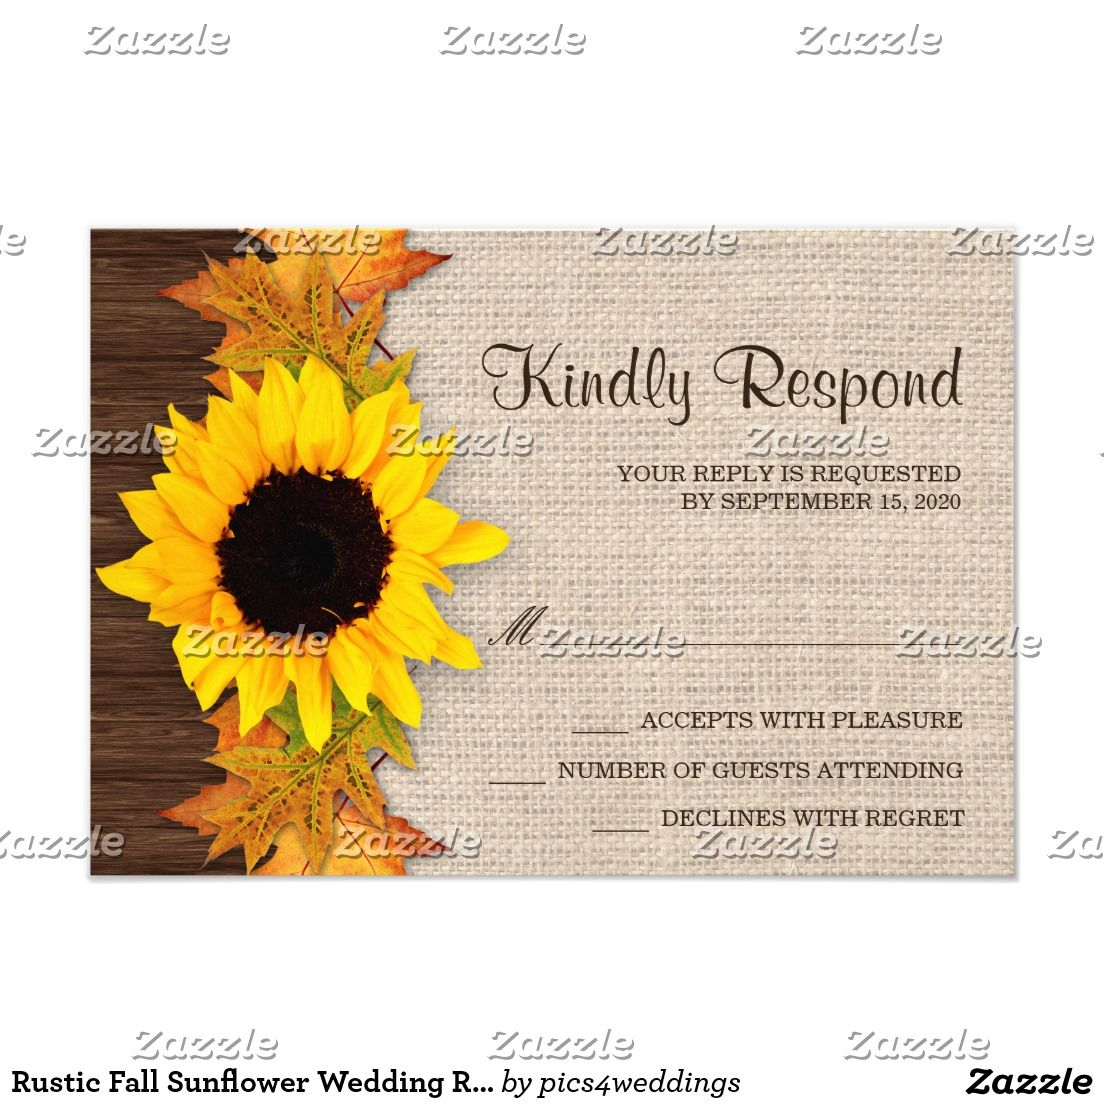 Rustic Fall Sunflower Wedding RSVP Cards